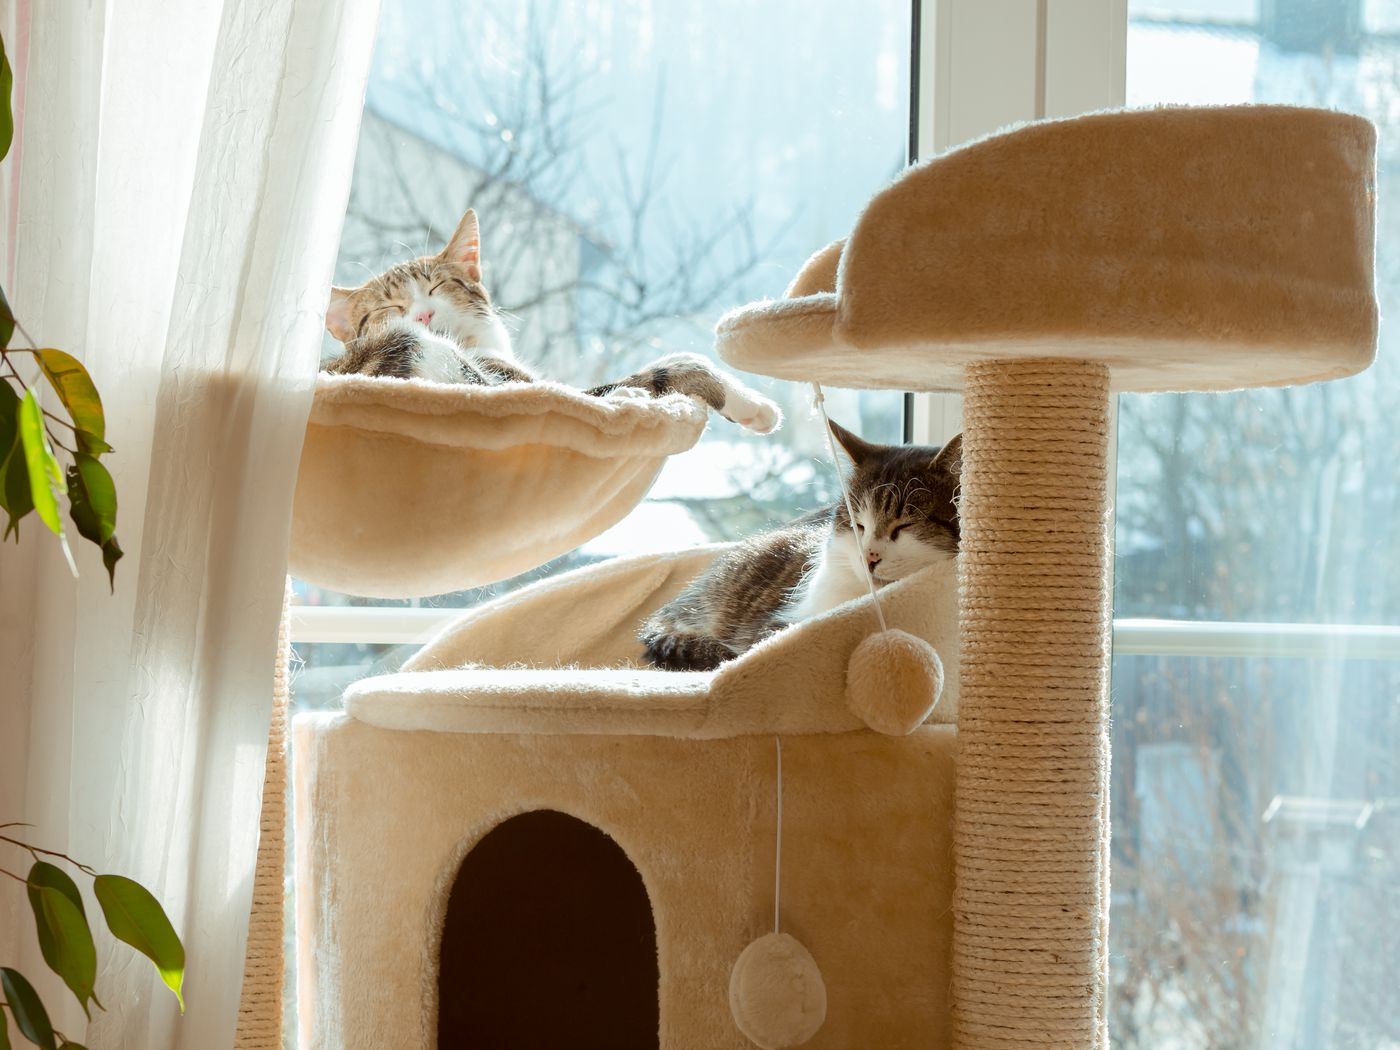 How To Build A Diy Cat Tower In 9 Steps This Old House